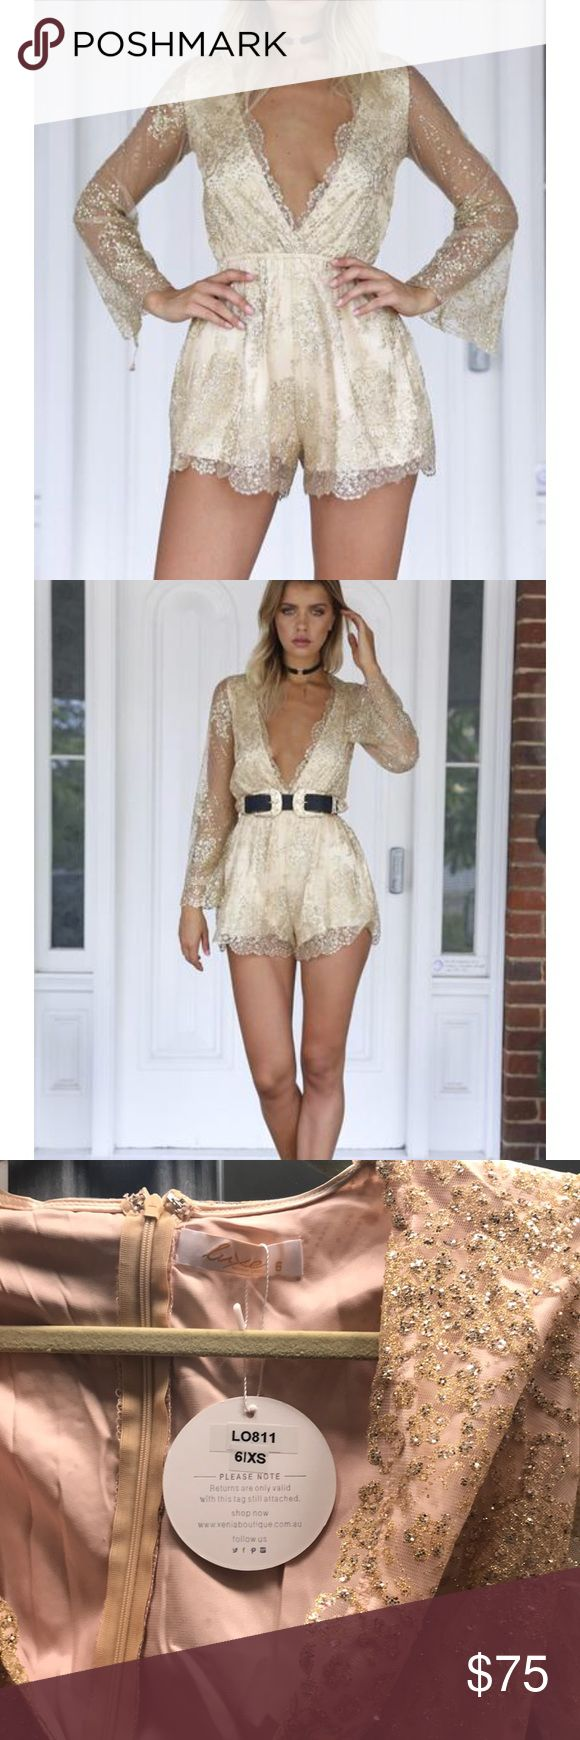 Gold playsuit Gold glitter playsuit! Brand new tags still on never worn. High quality. Deep v with stretch waist. It's too big on me and I don't have time to alter it before my birthday on Saturday so I'm selling. Xenia Boutique Dresses Mini